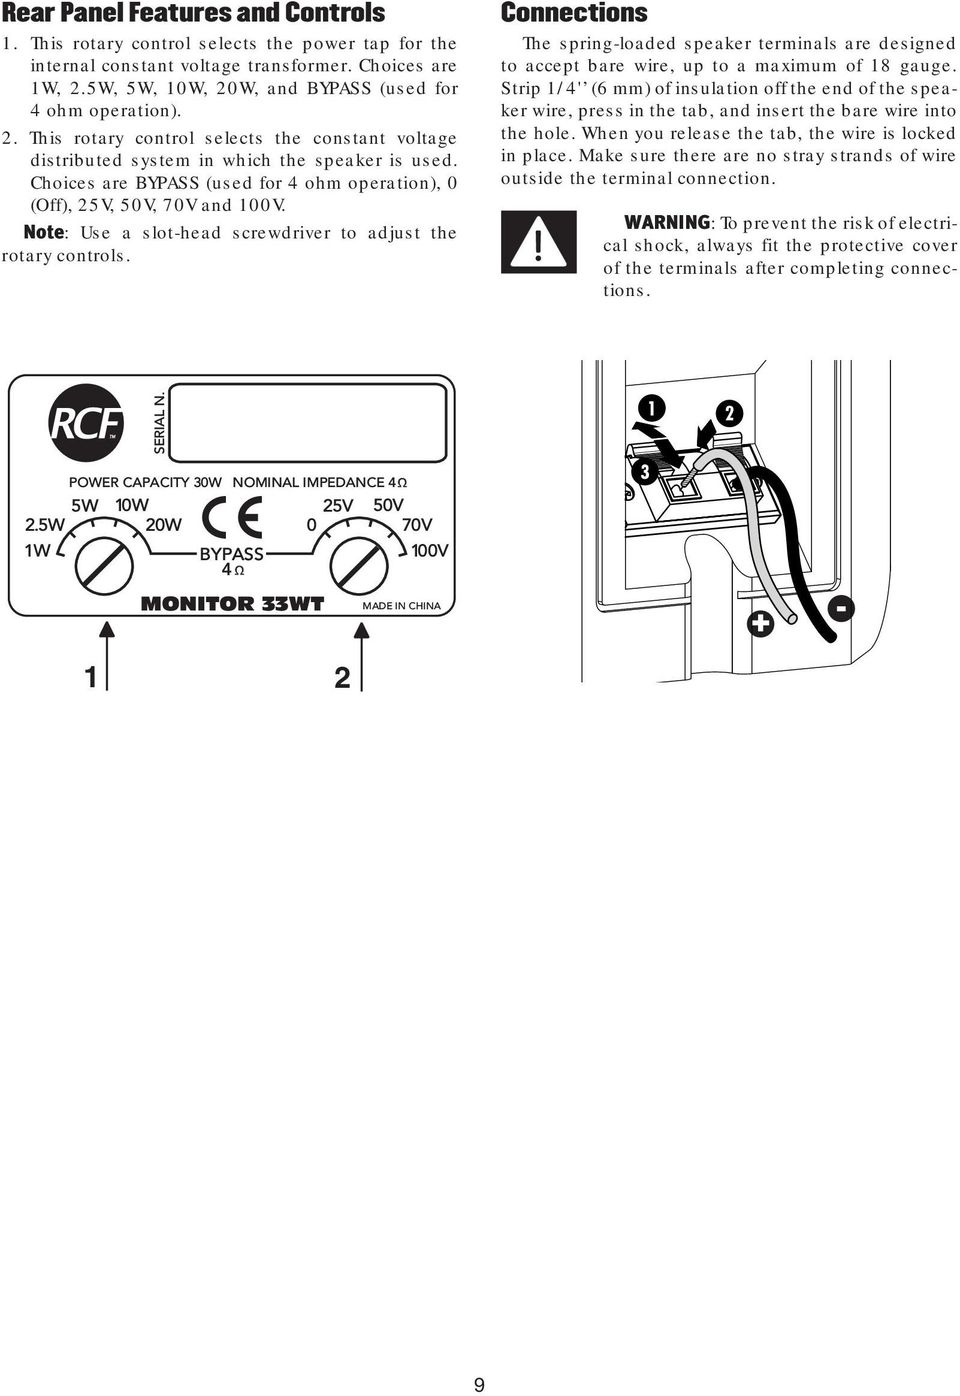 Note: Use a slot-head screwdriver to adjust the rotary controls. Connections The spring-loaded speaker terminals are designed to accept bare wire, up to a maximum of 18 gauge.